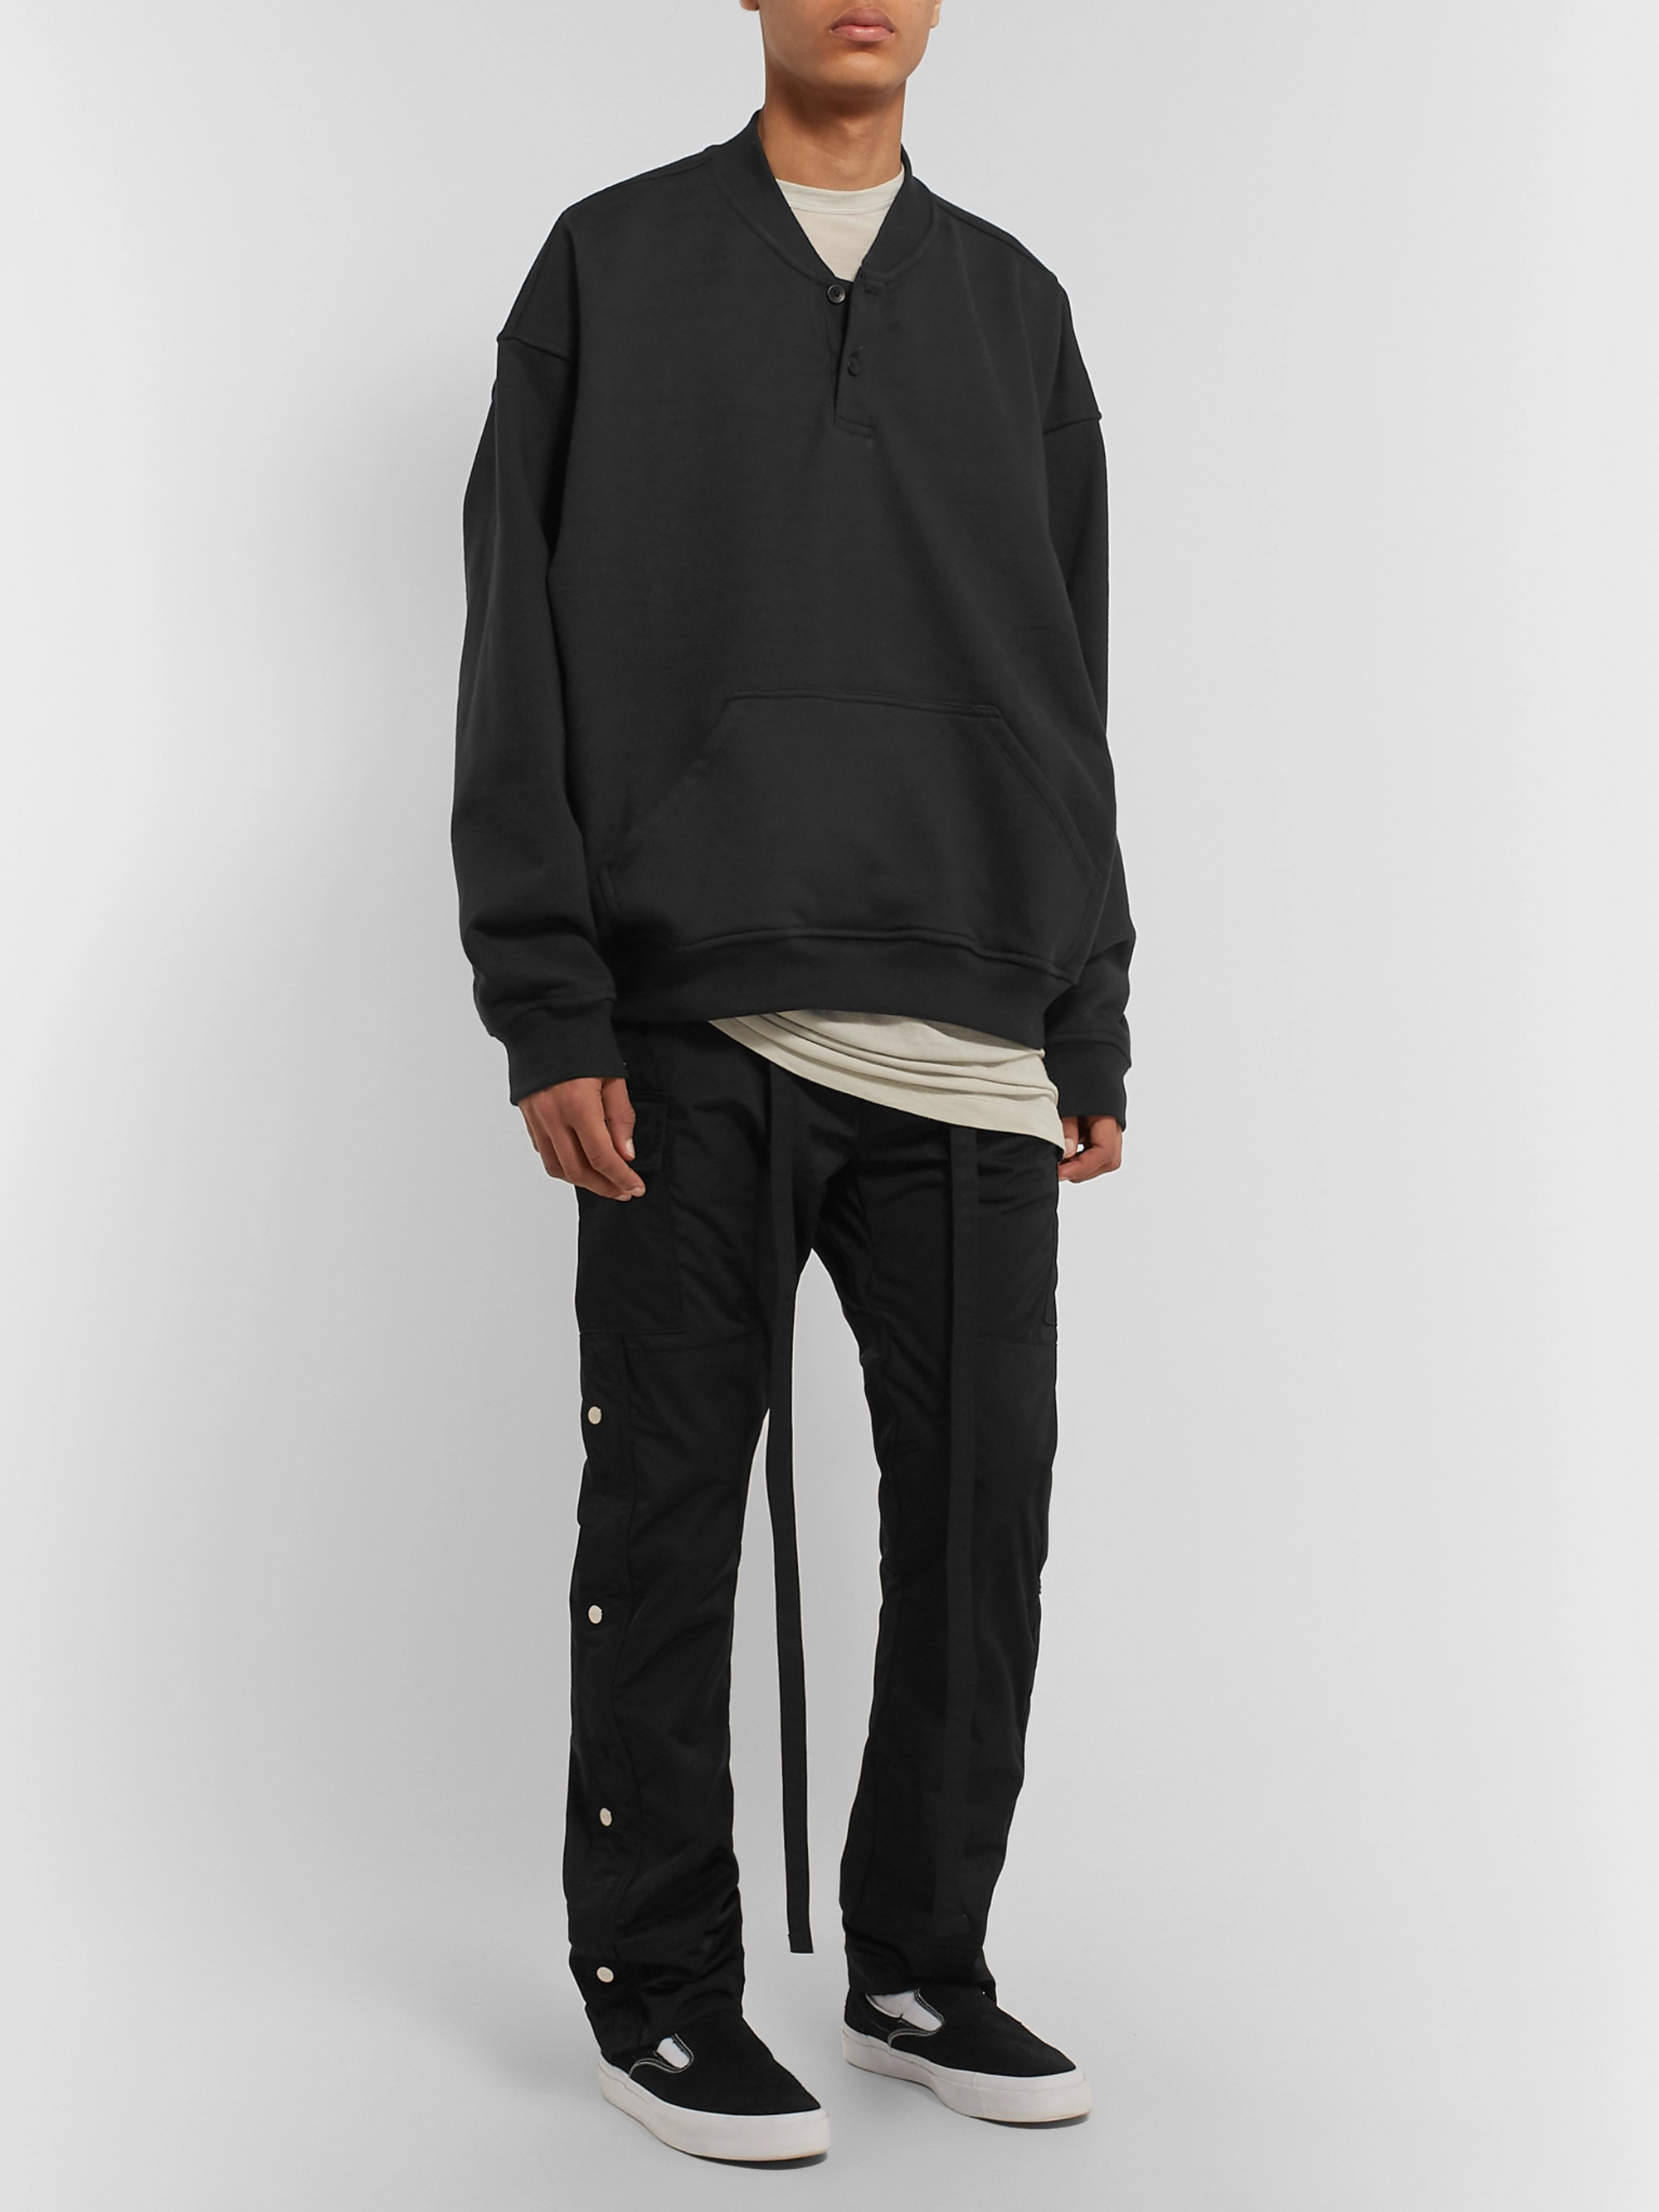 Fear of God Oversized Loopback Cotton-Jersey Henley Sweatshirt